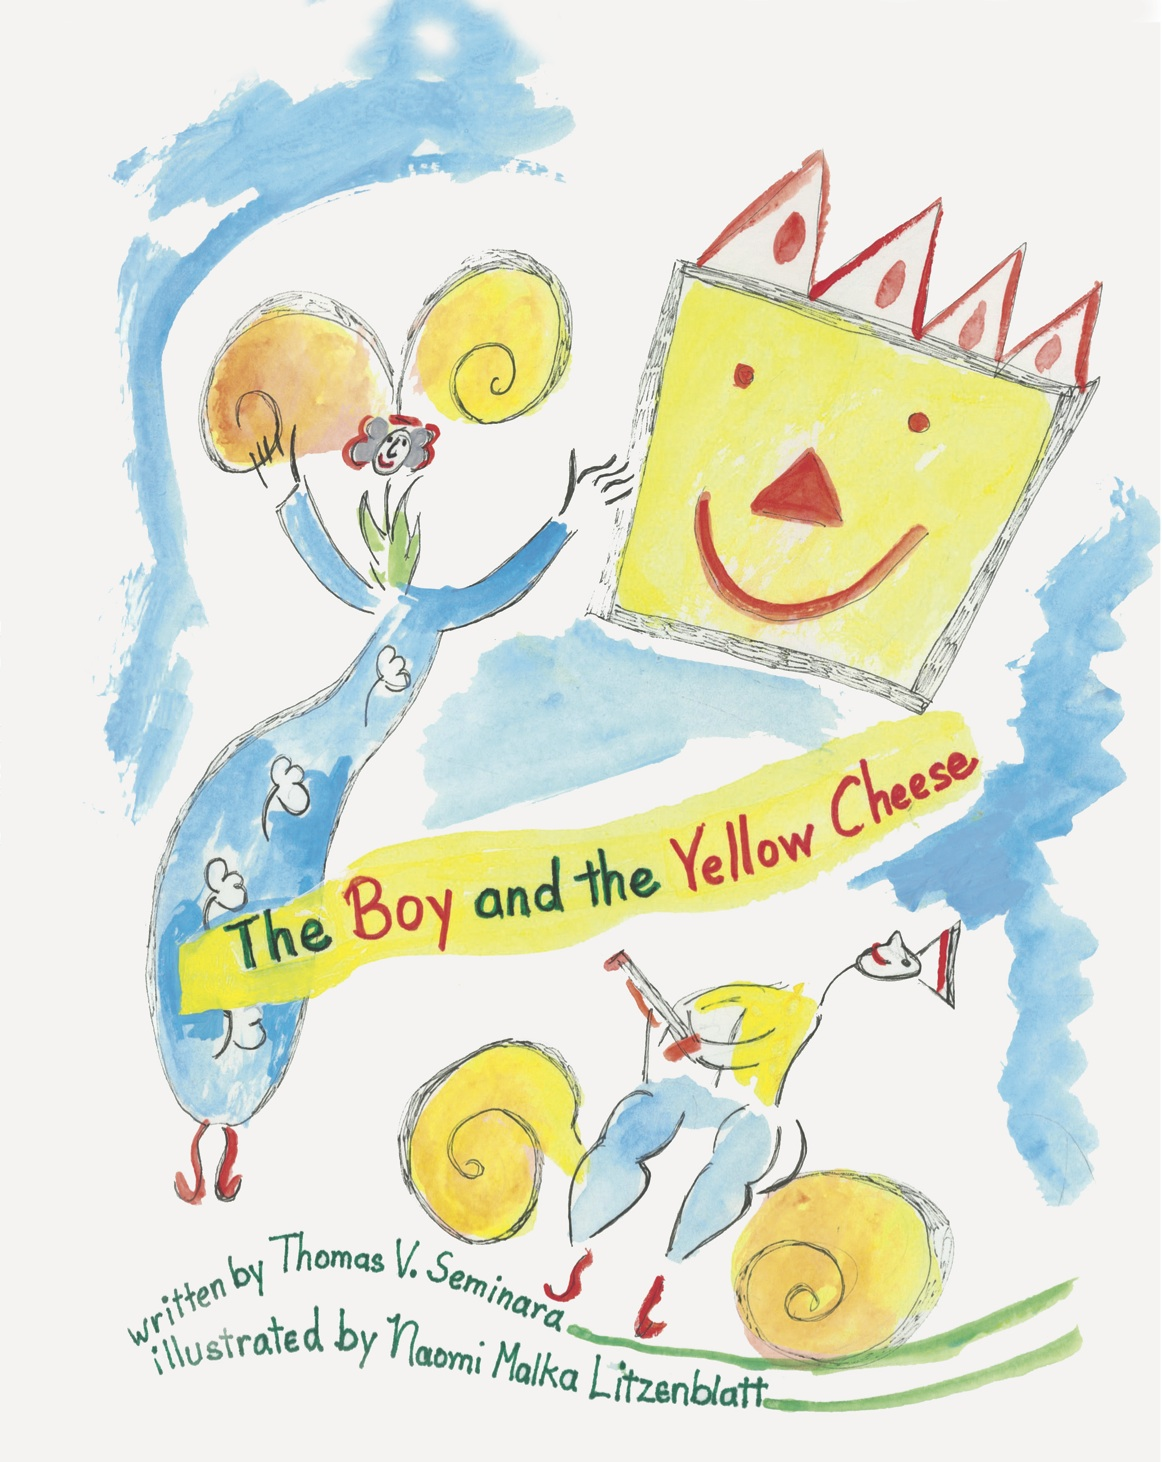 BoyandtheYellowCheese_cover